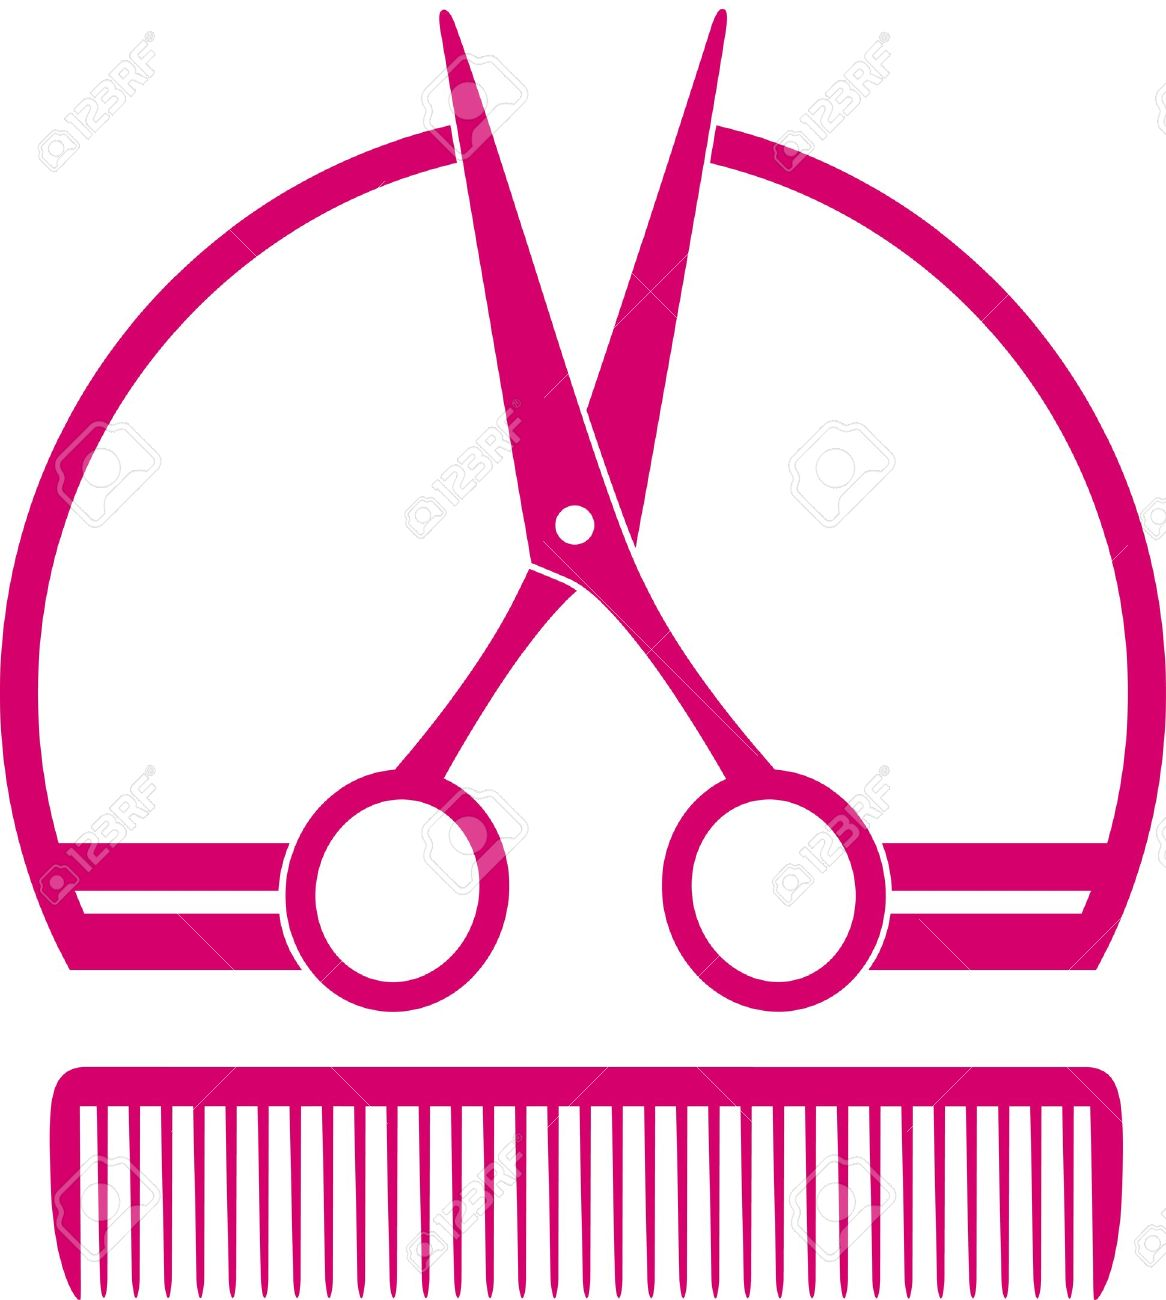 17,737 Comb Stock Vector Illustration And Royalty Free Comb Clipart